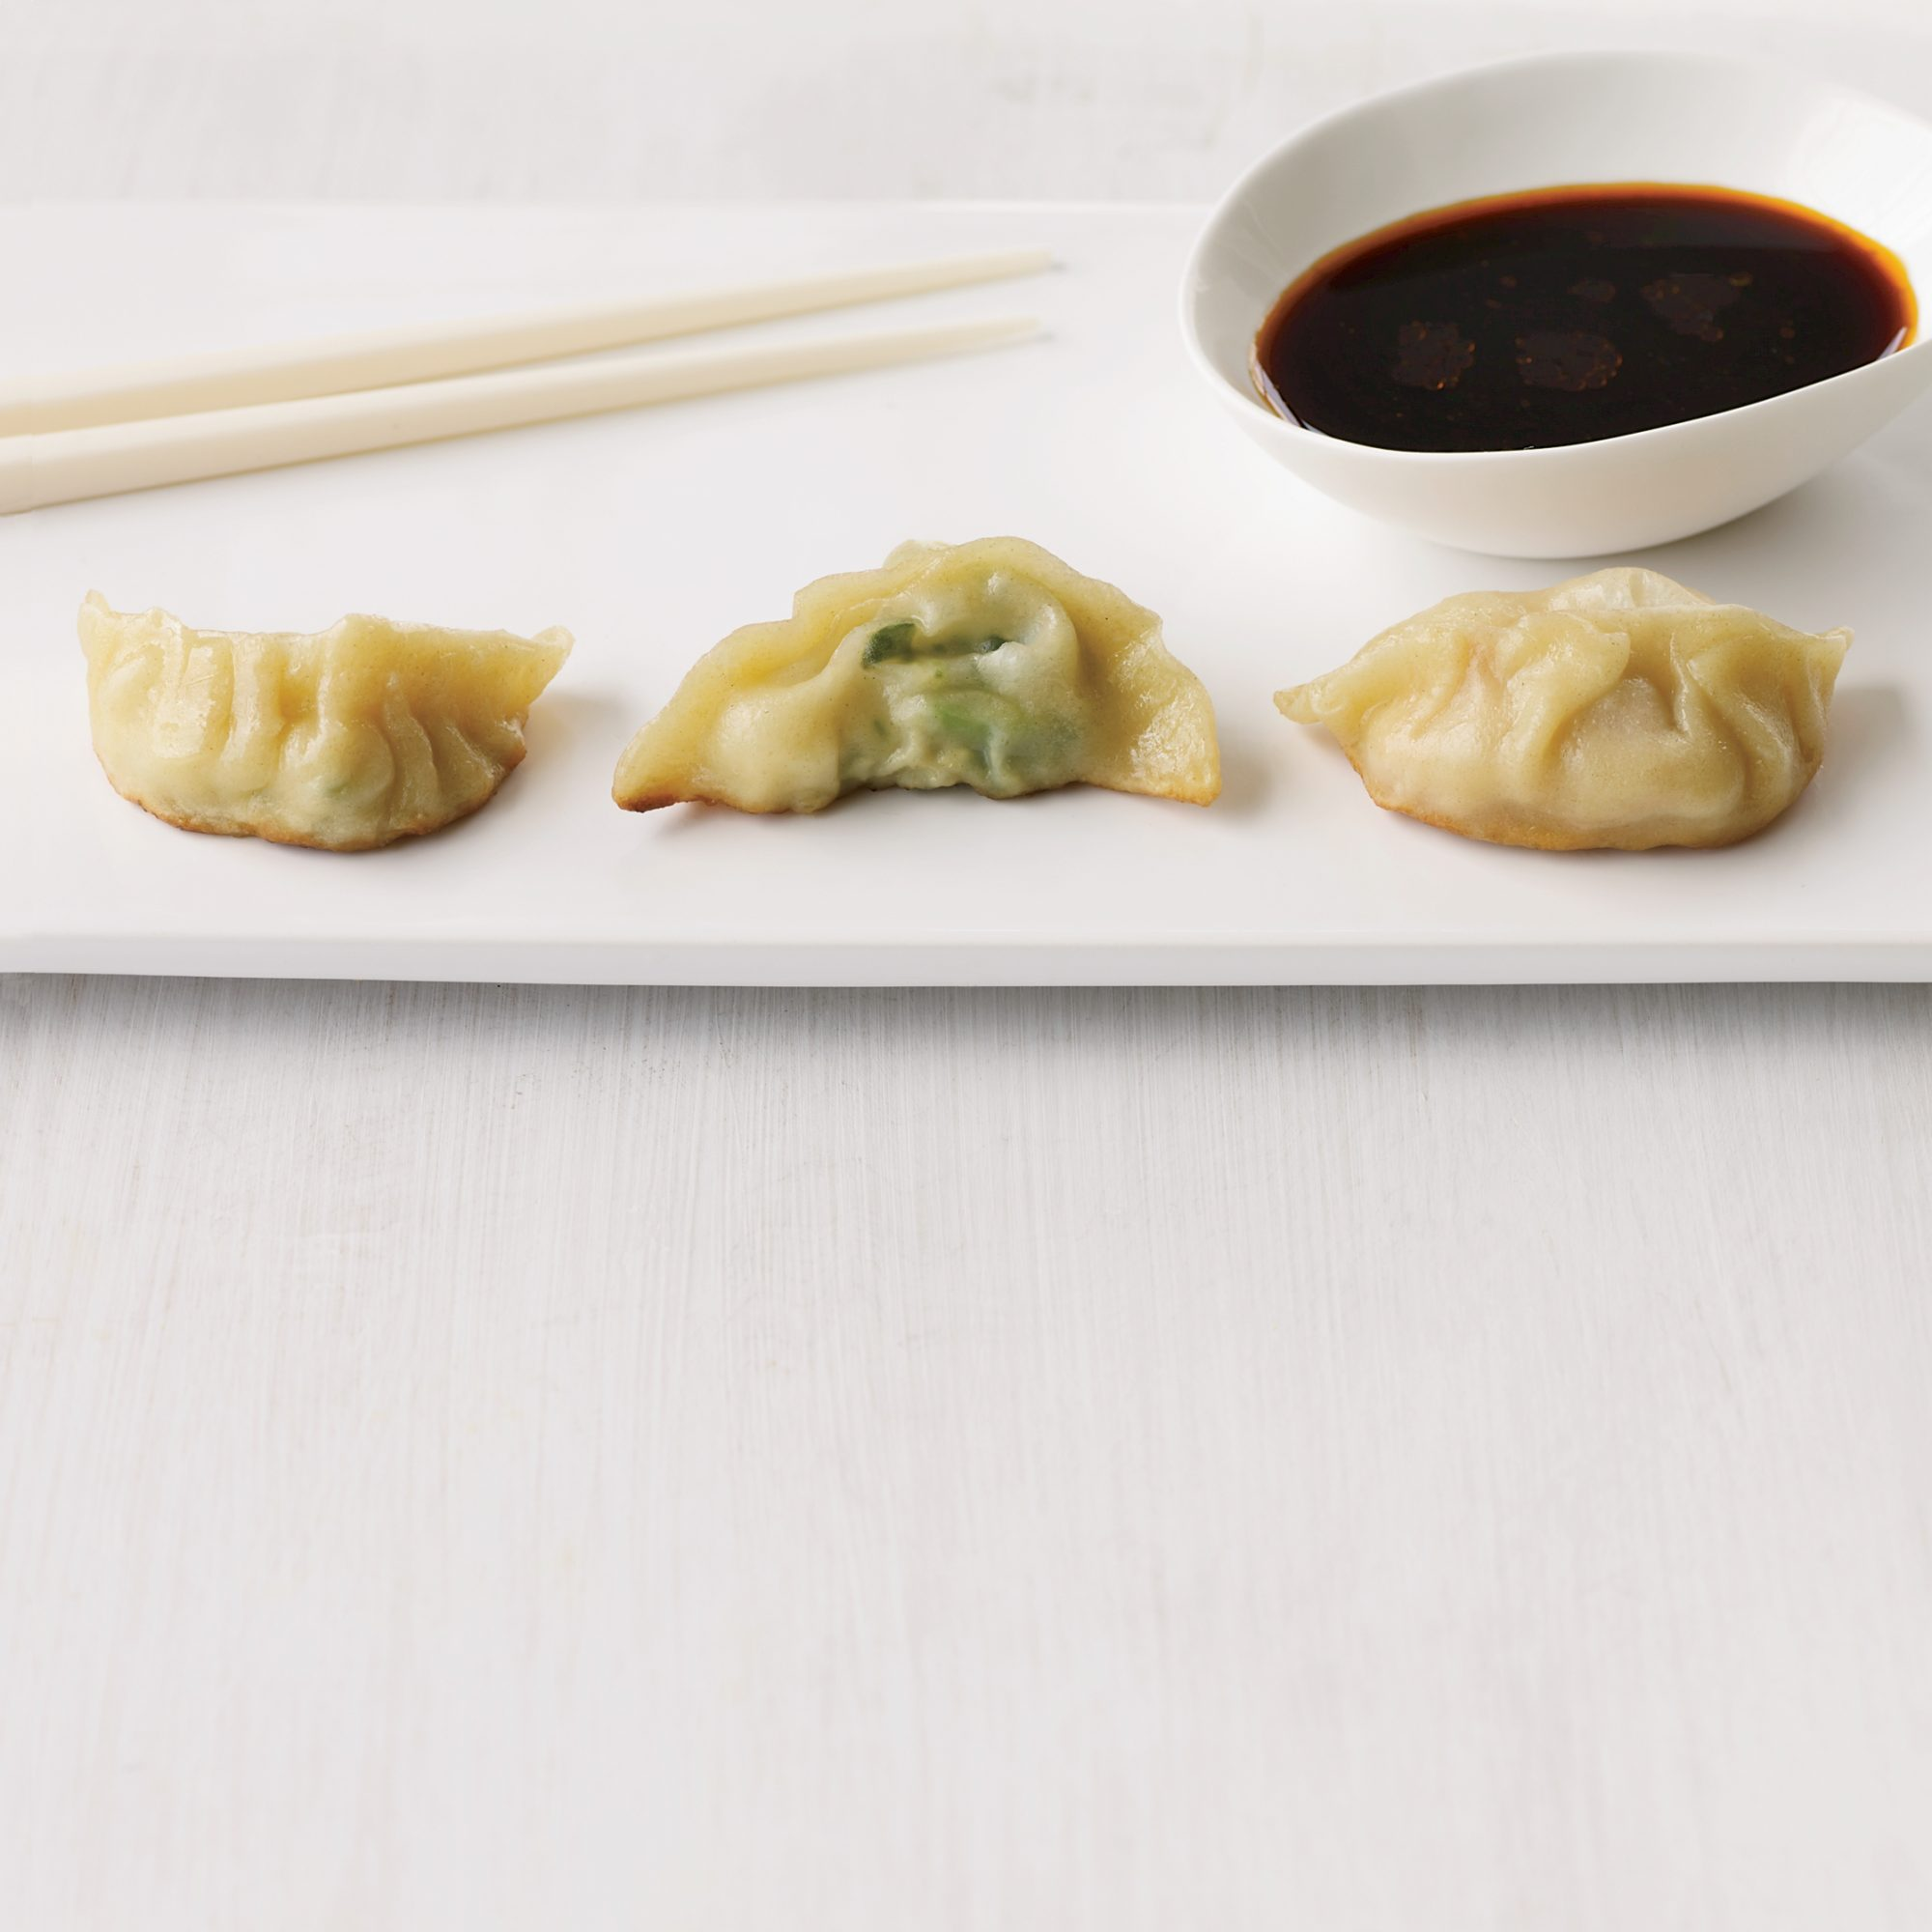 Food Obsessions: Dumplings, Gyoza and Pot Stickers